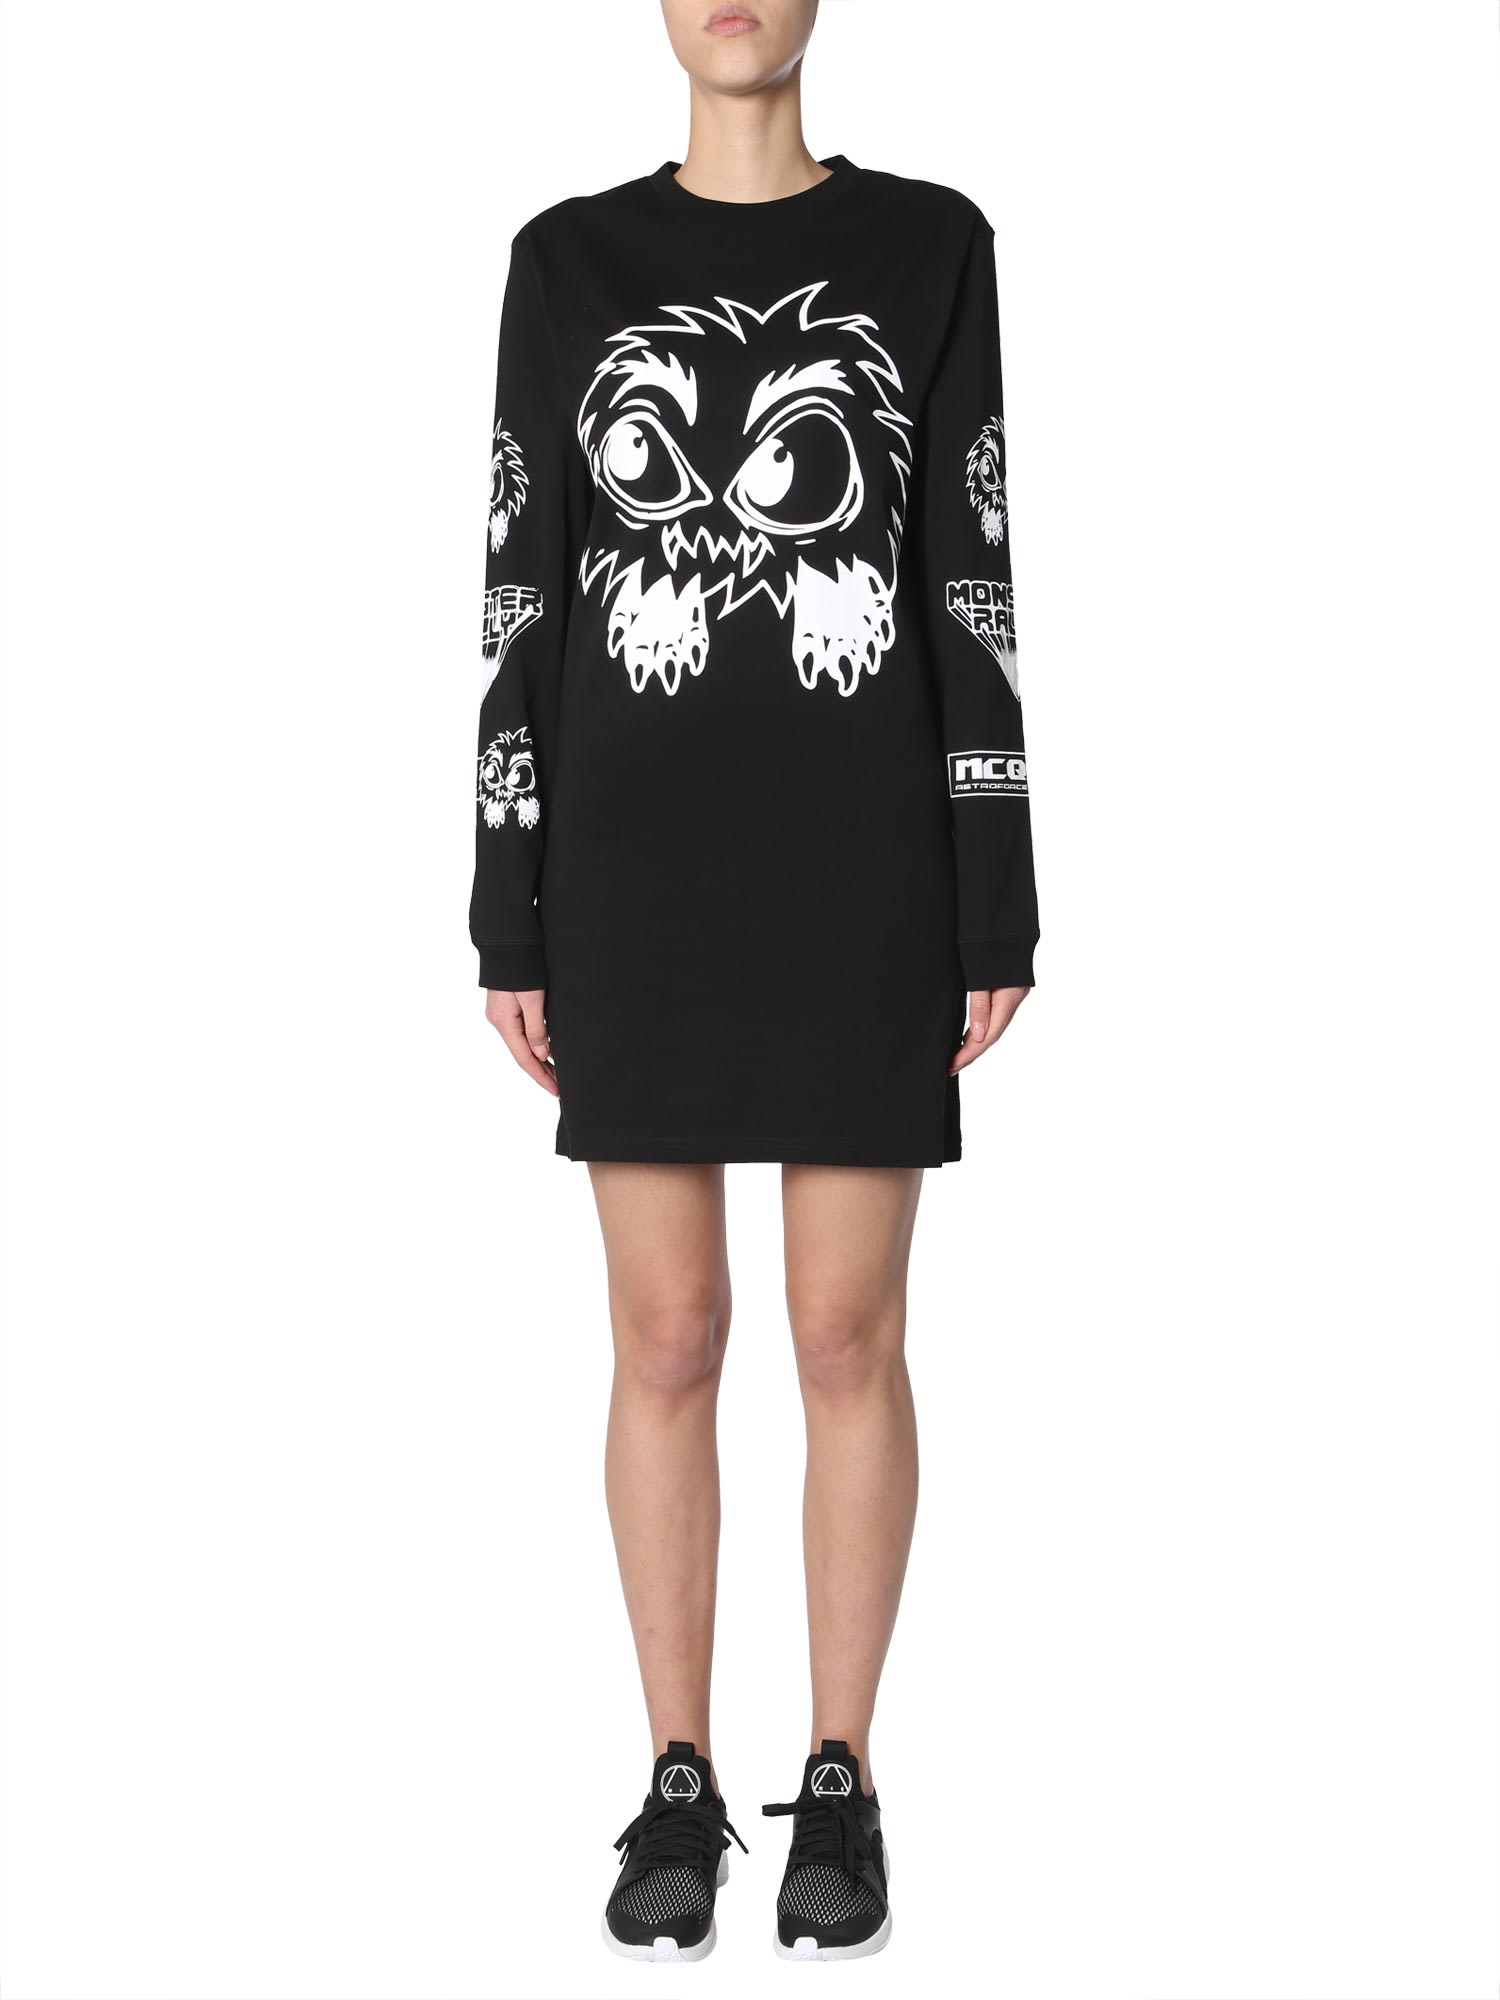 McQ Alexander McQueen Cotton Jersey Dress